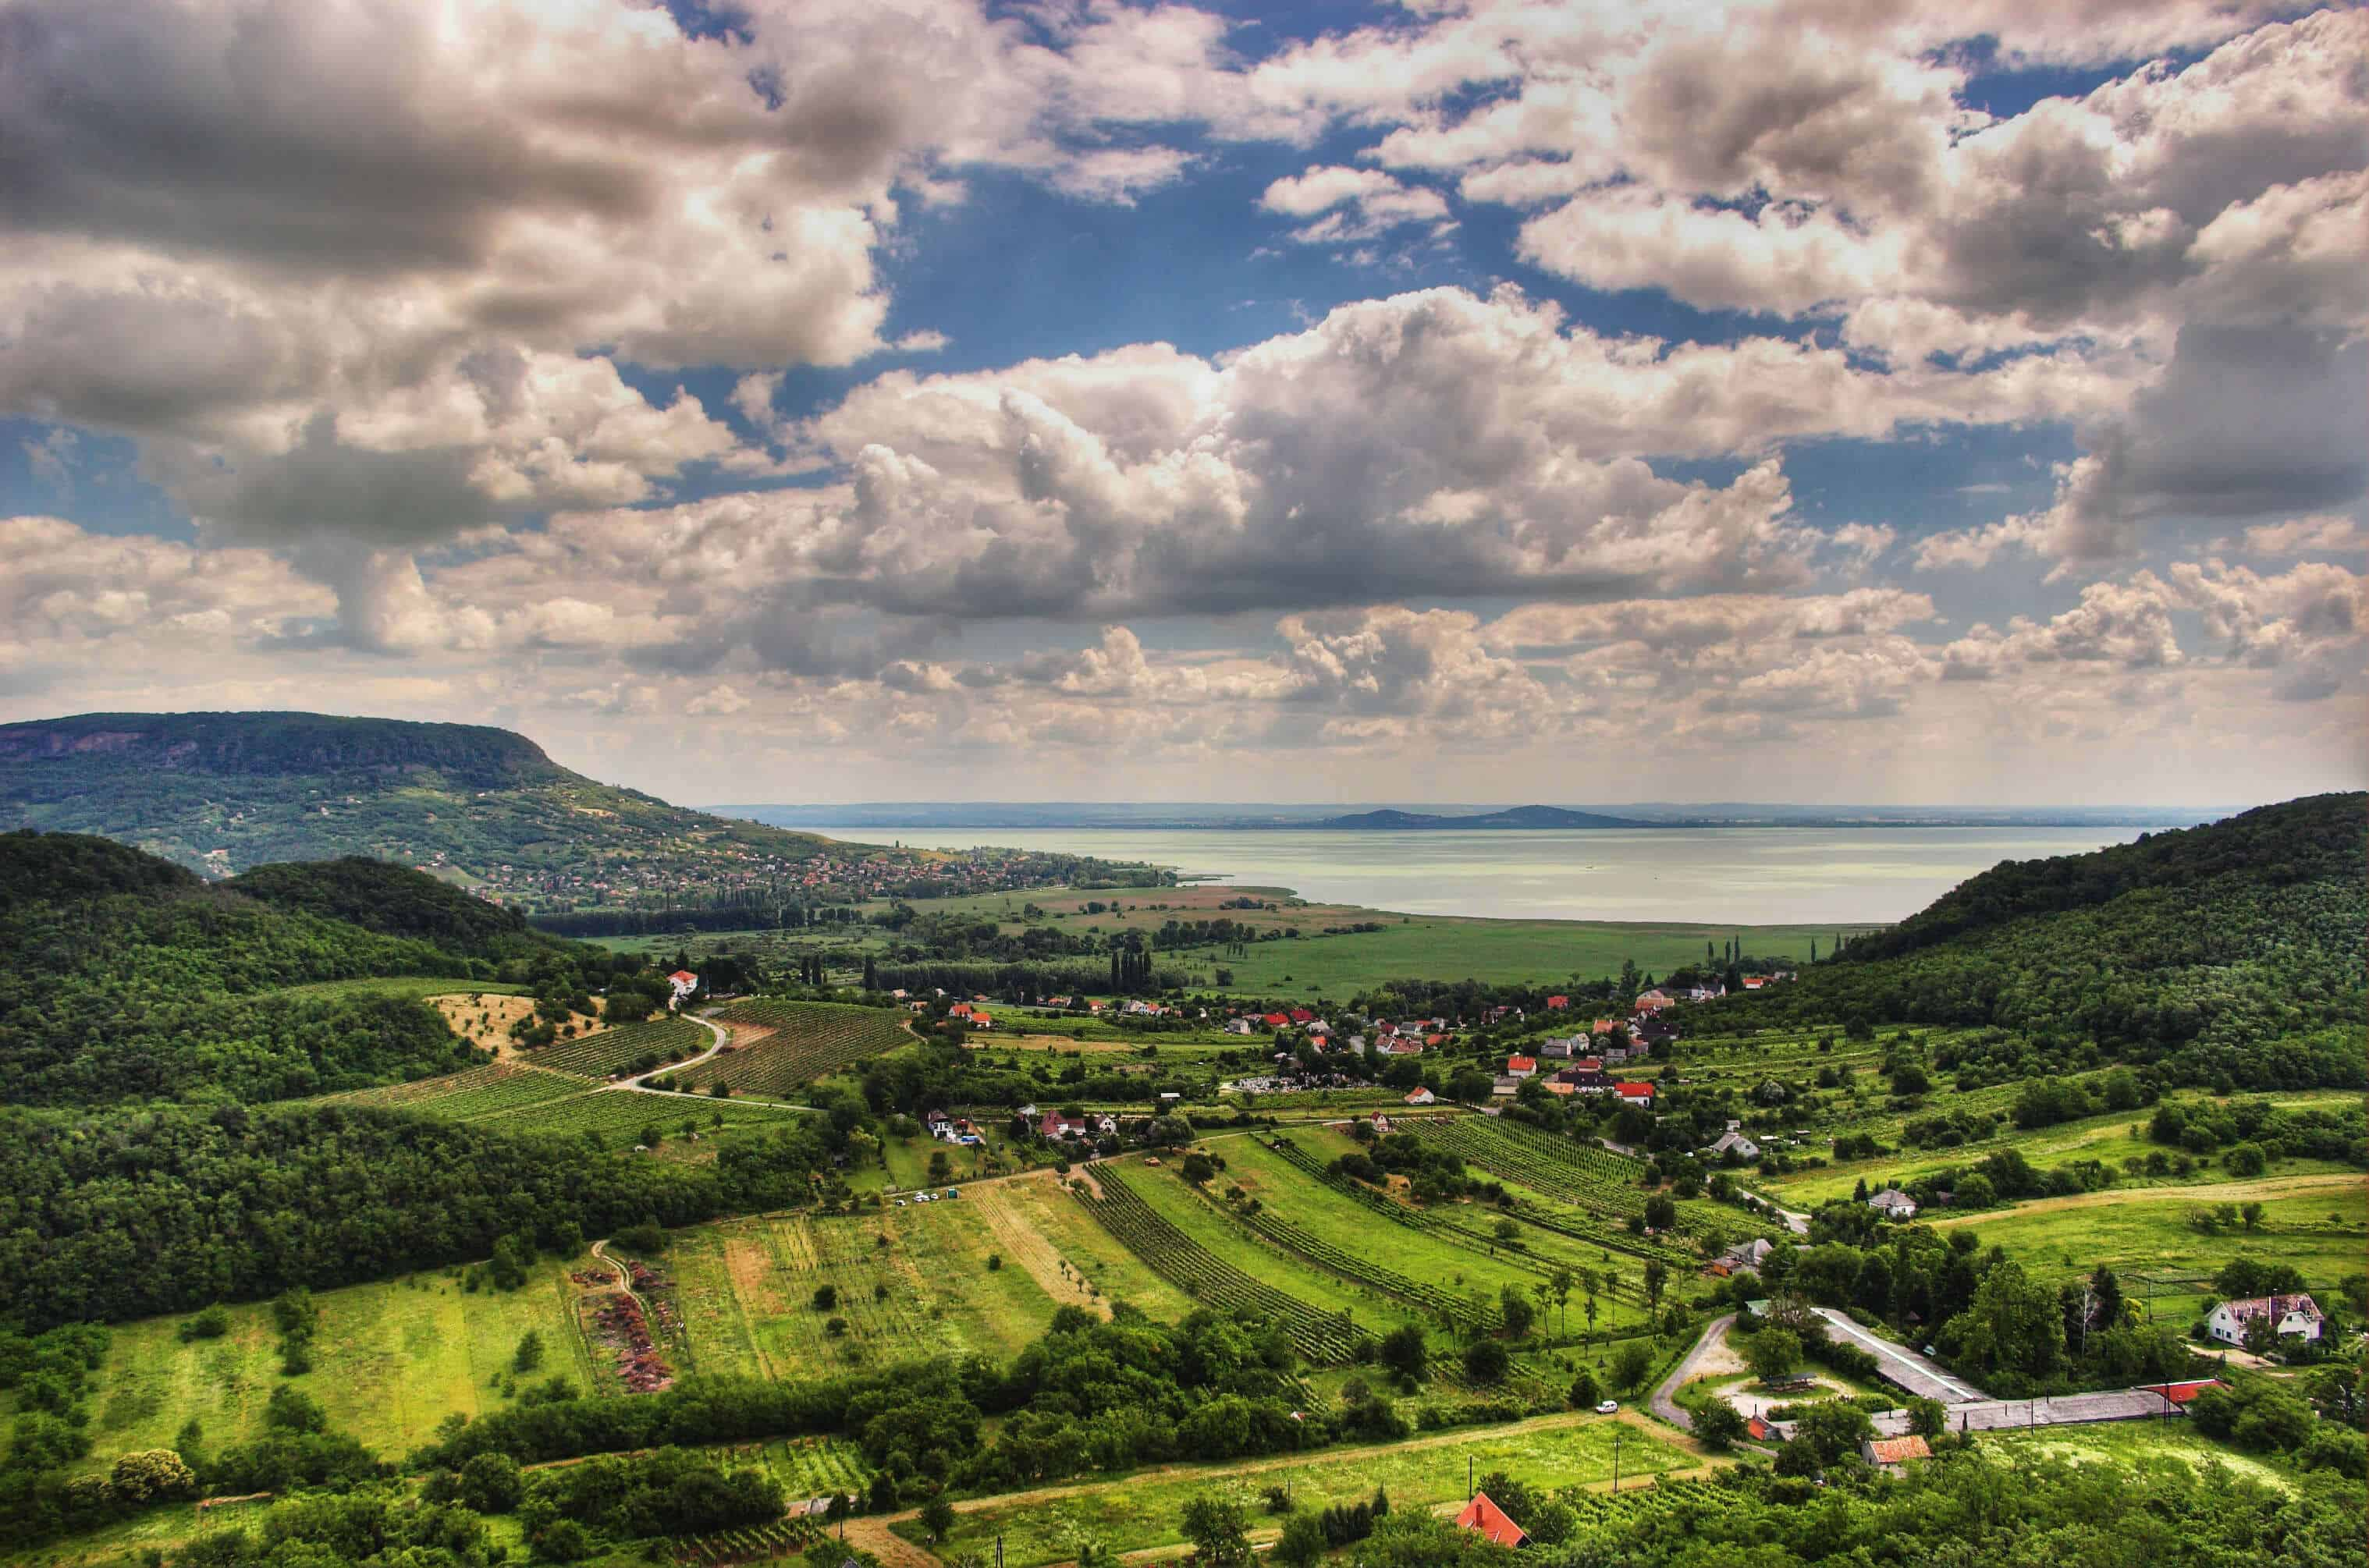 Hungary as a wine country – 10 interesting facts